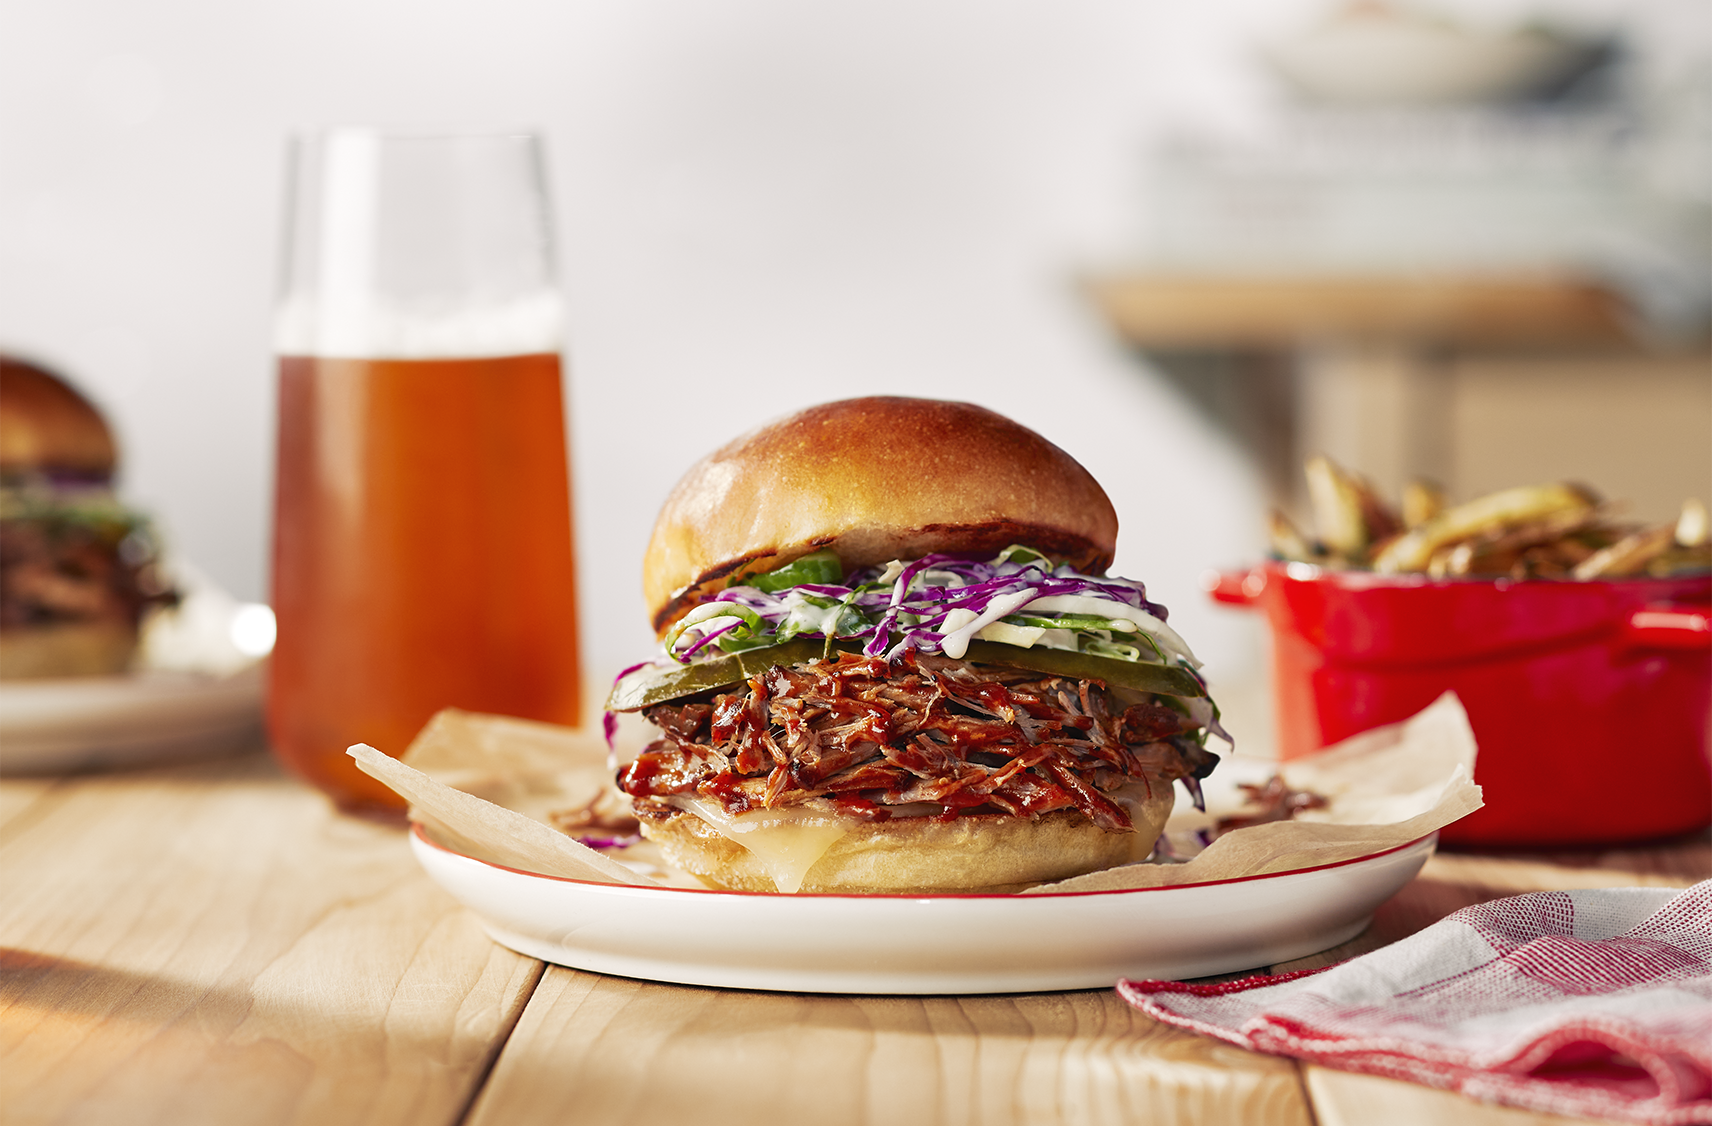 A pulled pork sandwich topped with a creamy slaw on a plate next to a serving of fries and a drink